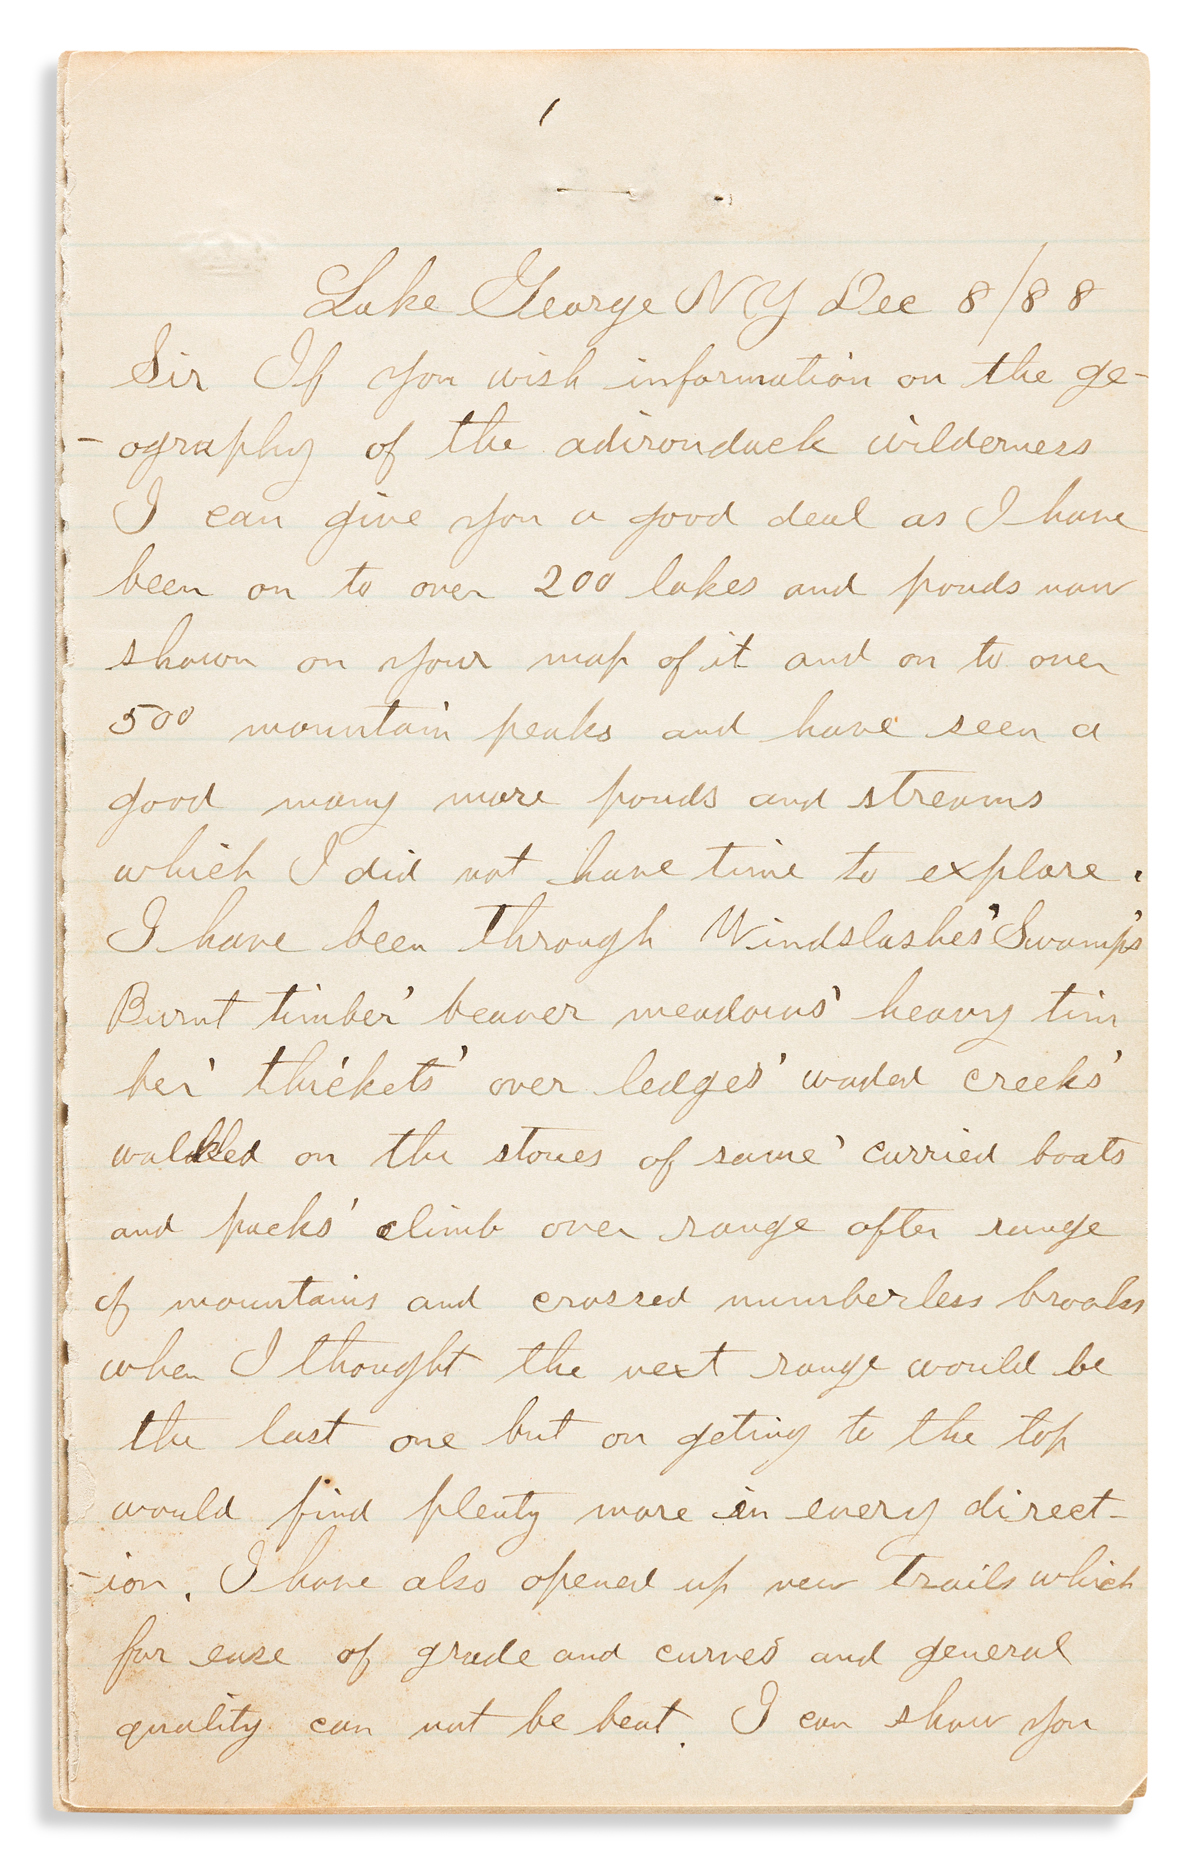 (NEW YORK.) John E. Alden. Letter documenting his exploration of hundreds of mountains and lakes in the Adirondack Mountains.